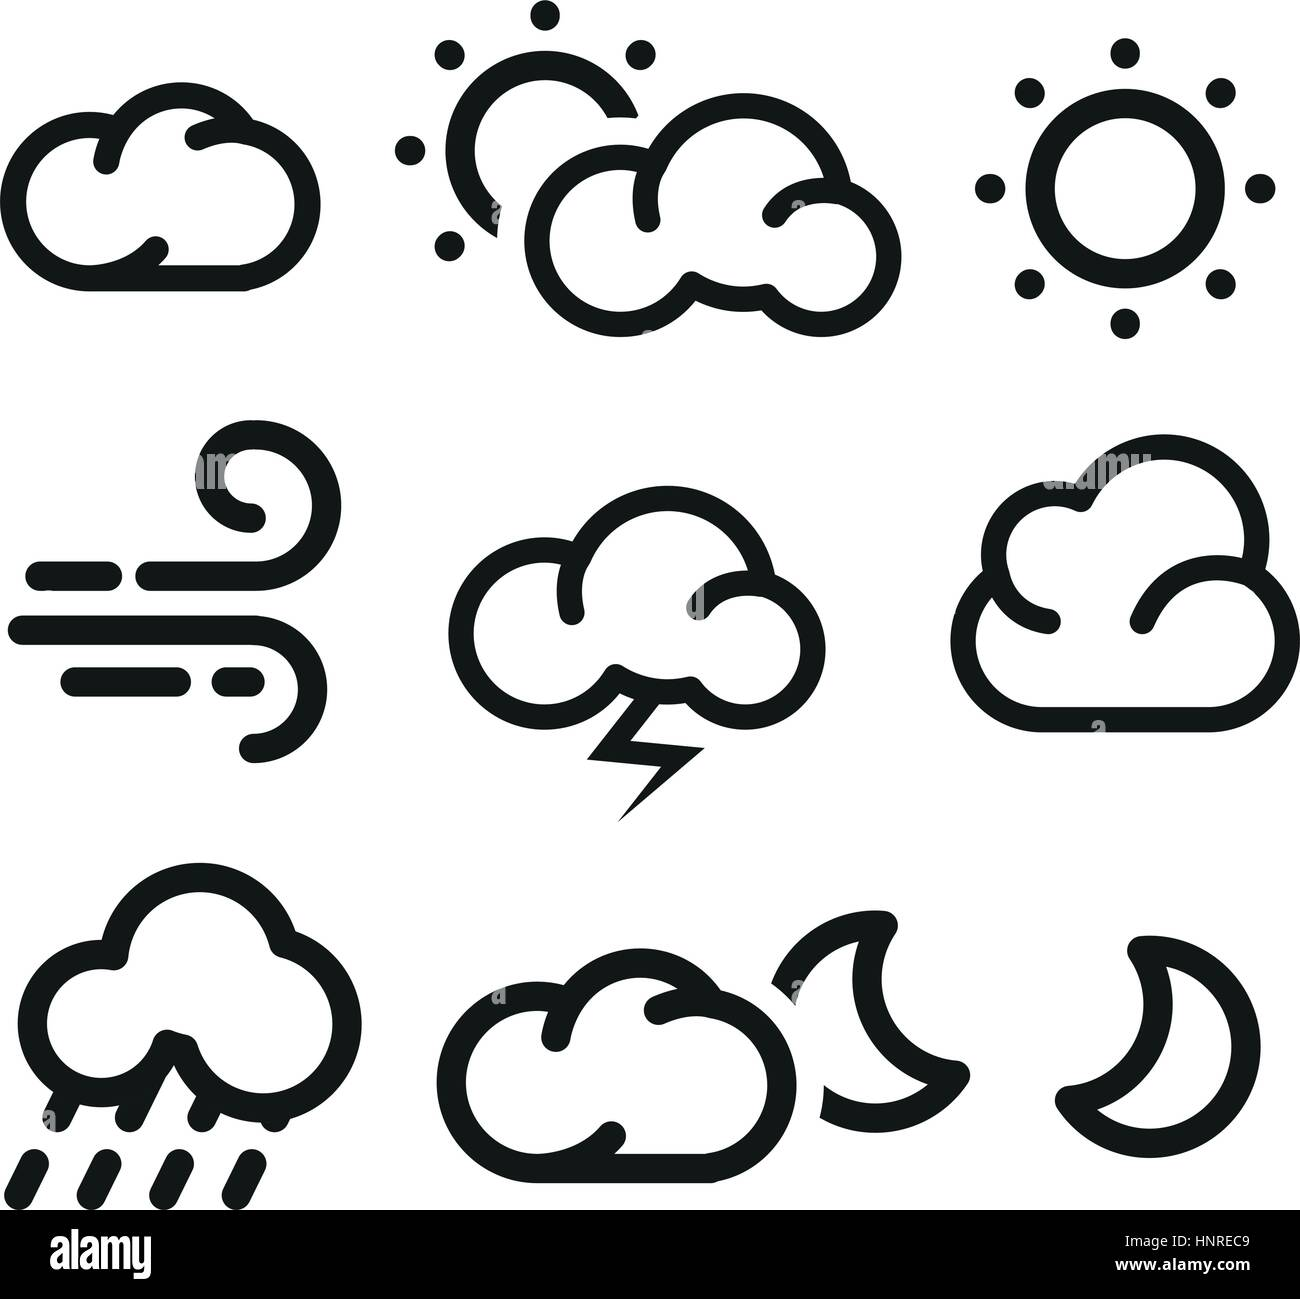 Isolated black and white color elements of weather forecast icons collection in lineart style. - Stock Image